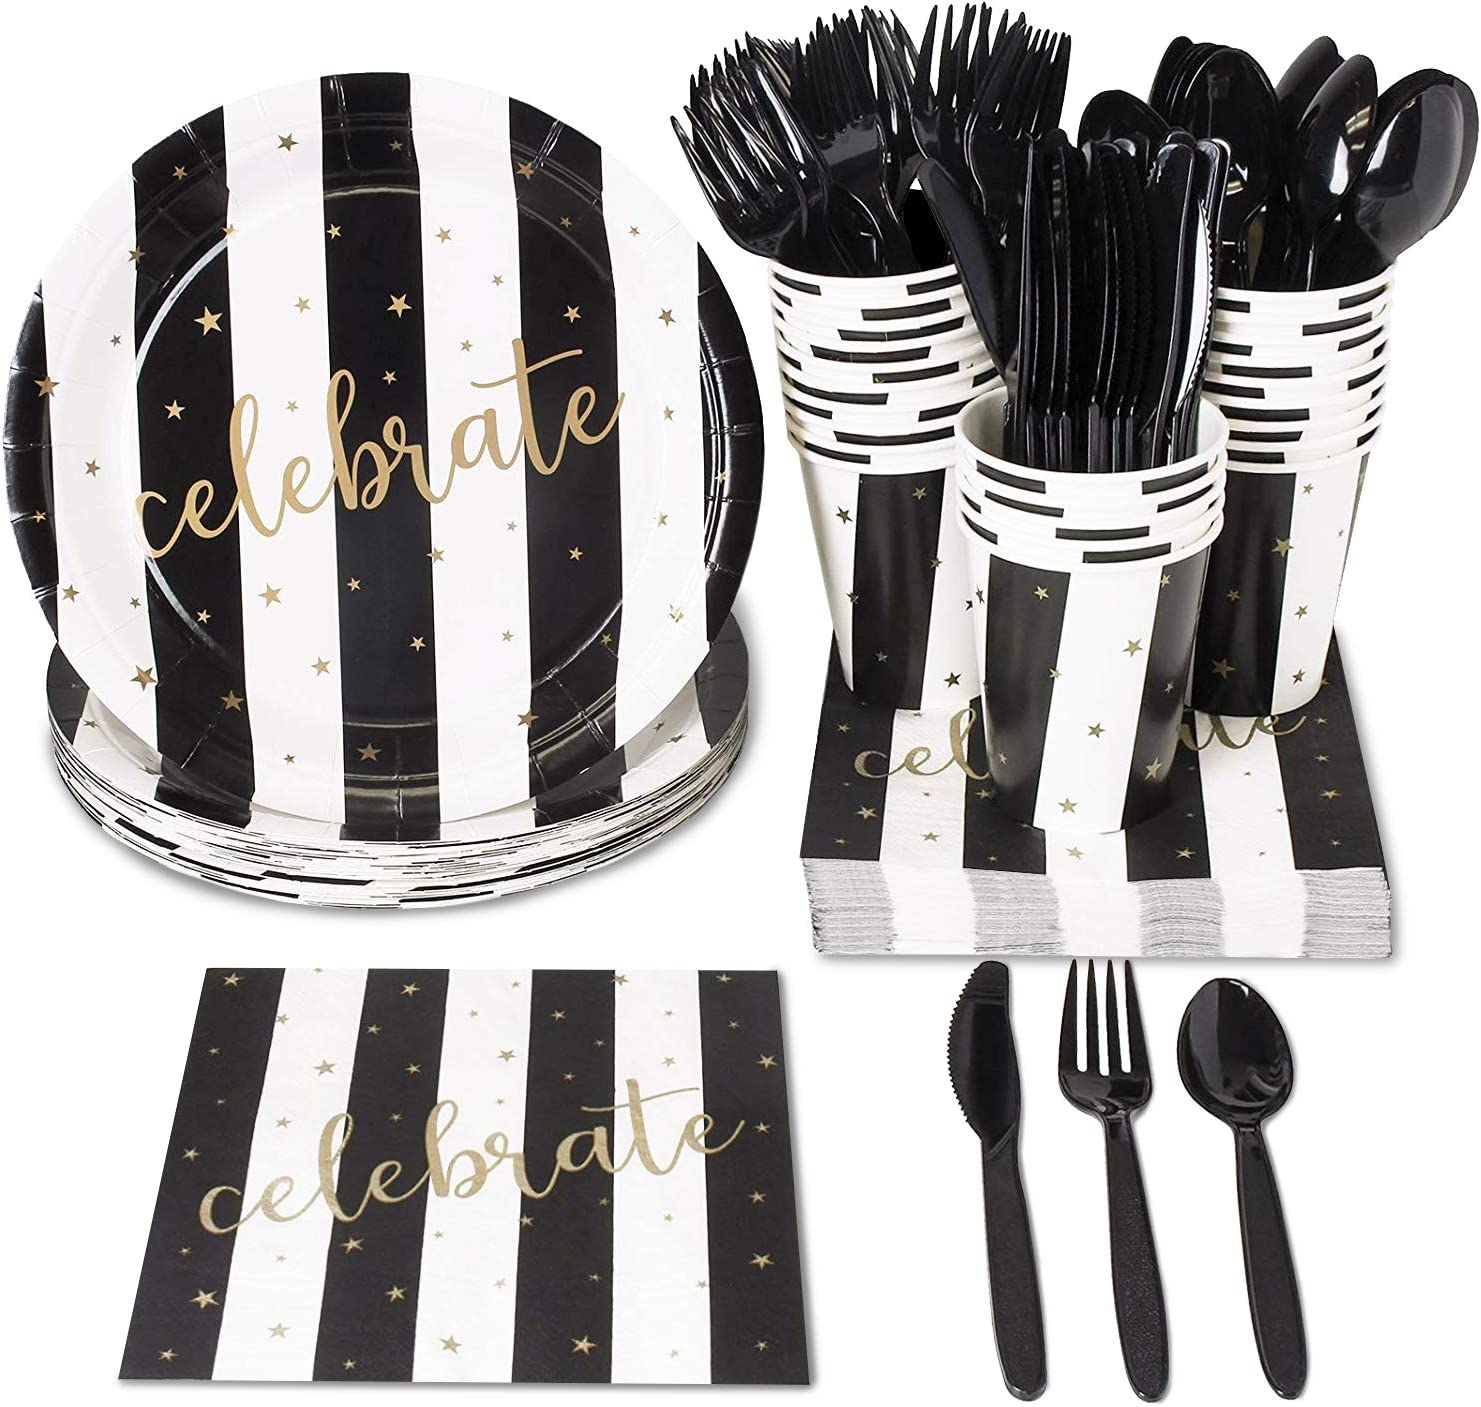 Celebratory Black and White Party Bundle, Includes Paper Plates, Napkins, Cups, and Cutlery (Serves 24, 144-Pieces)